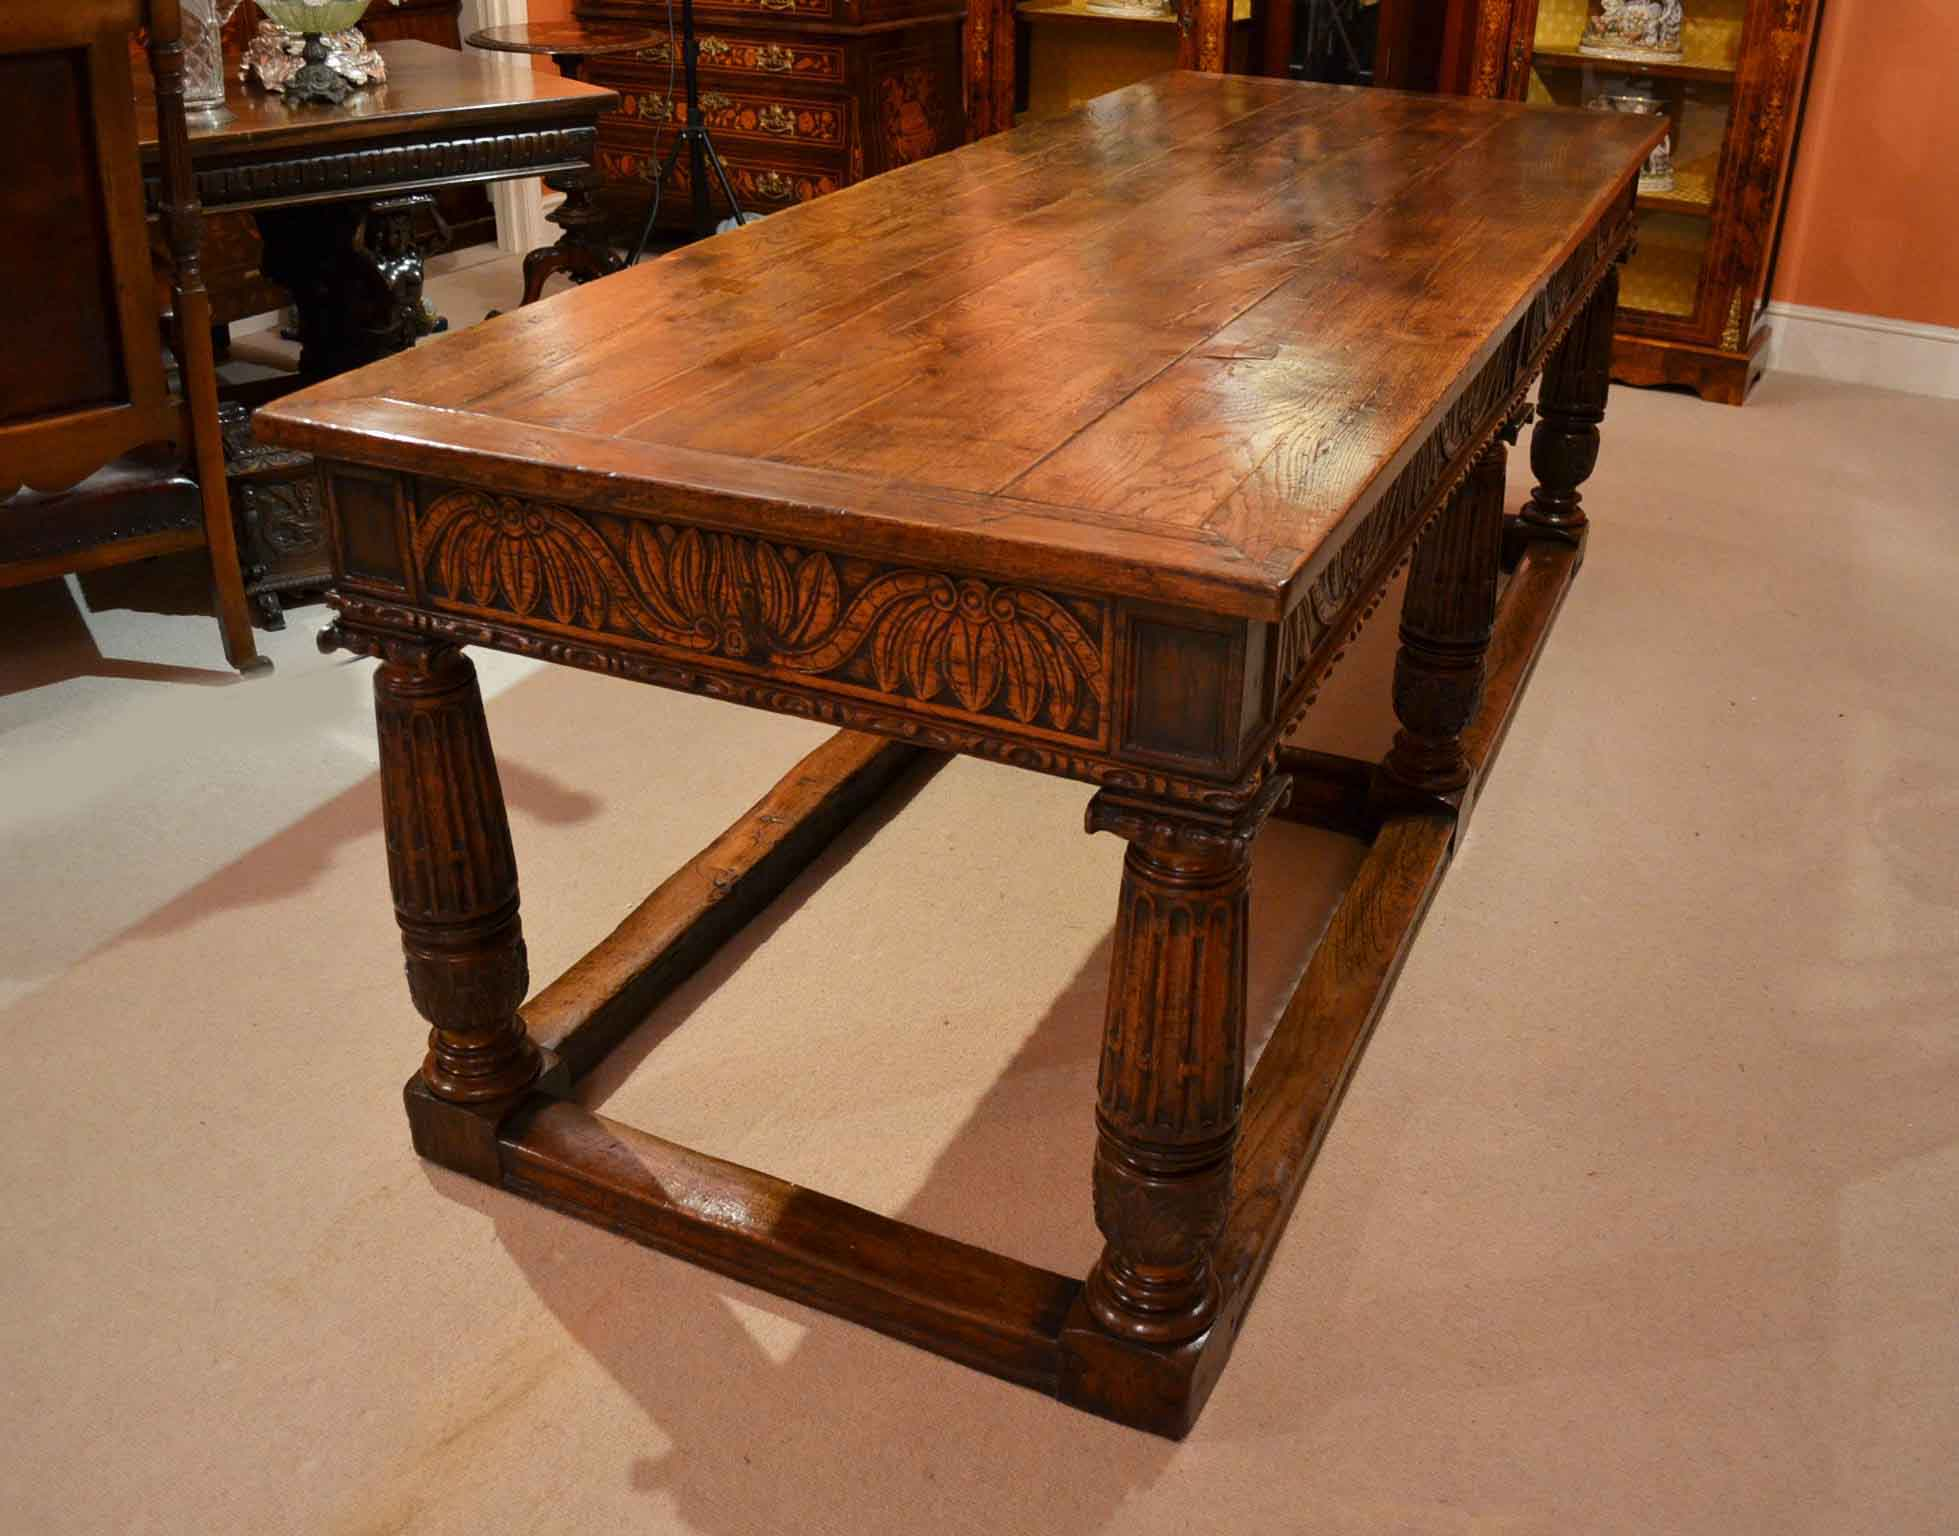 regent antiques dining tables and chairs tables antique oak refectory dining table 8 chairs. Black Bedroom Furniture Sets. Home Design Ideas